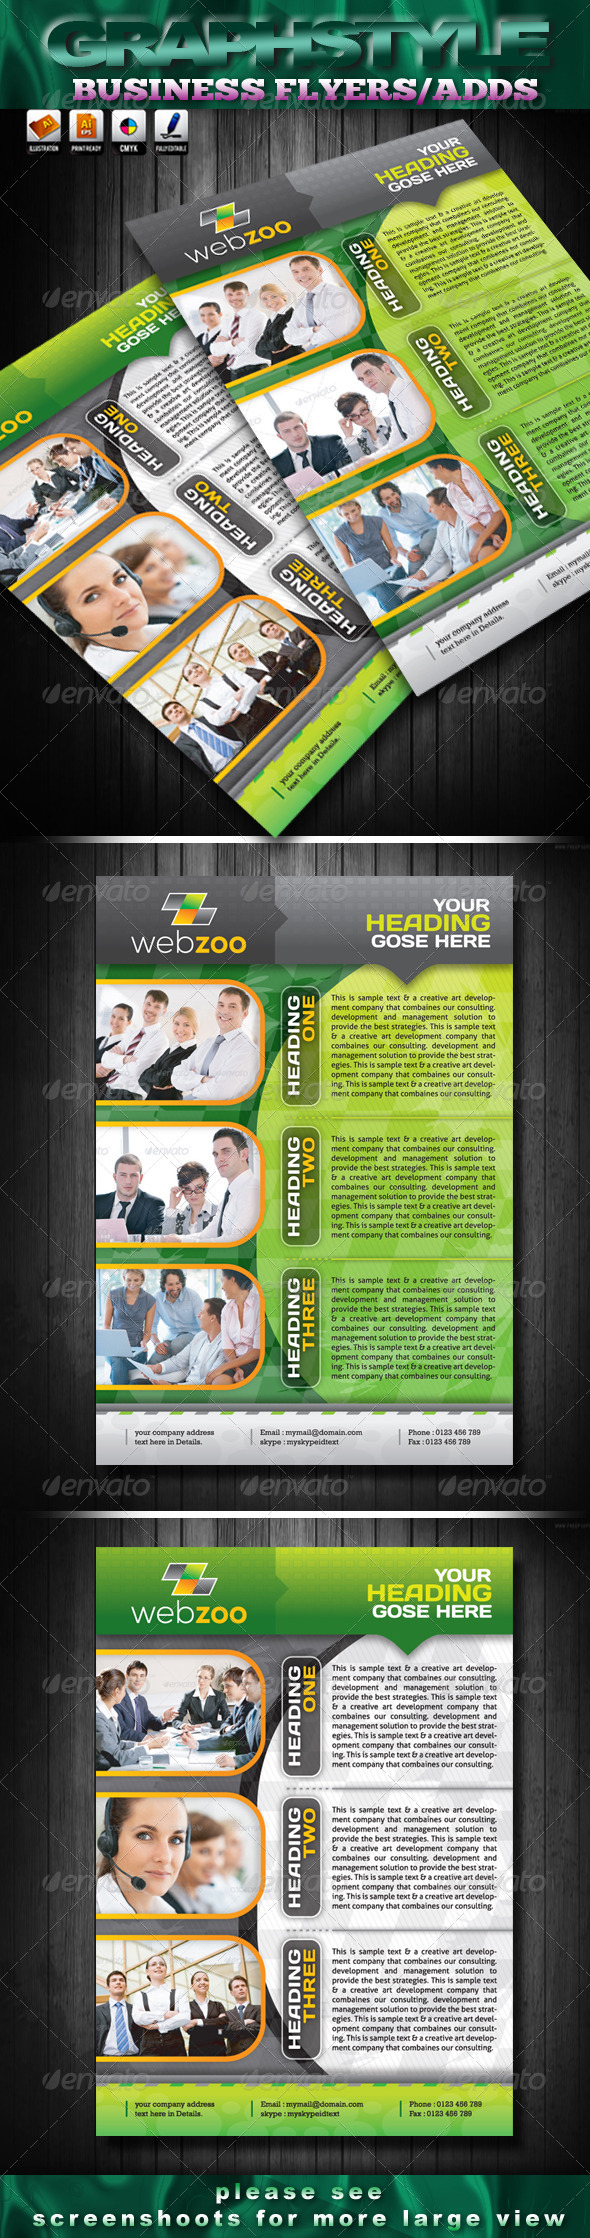 GraphicRiver Webzoo Business Flyers Adds 4277618